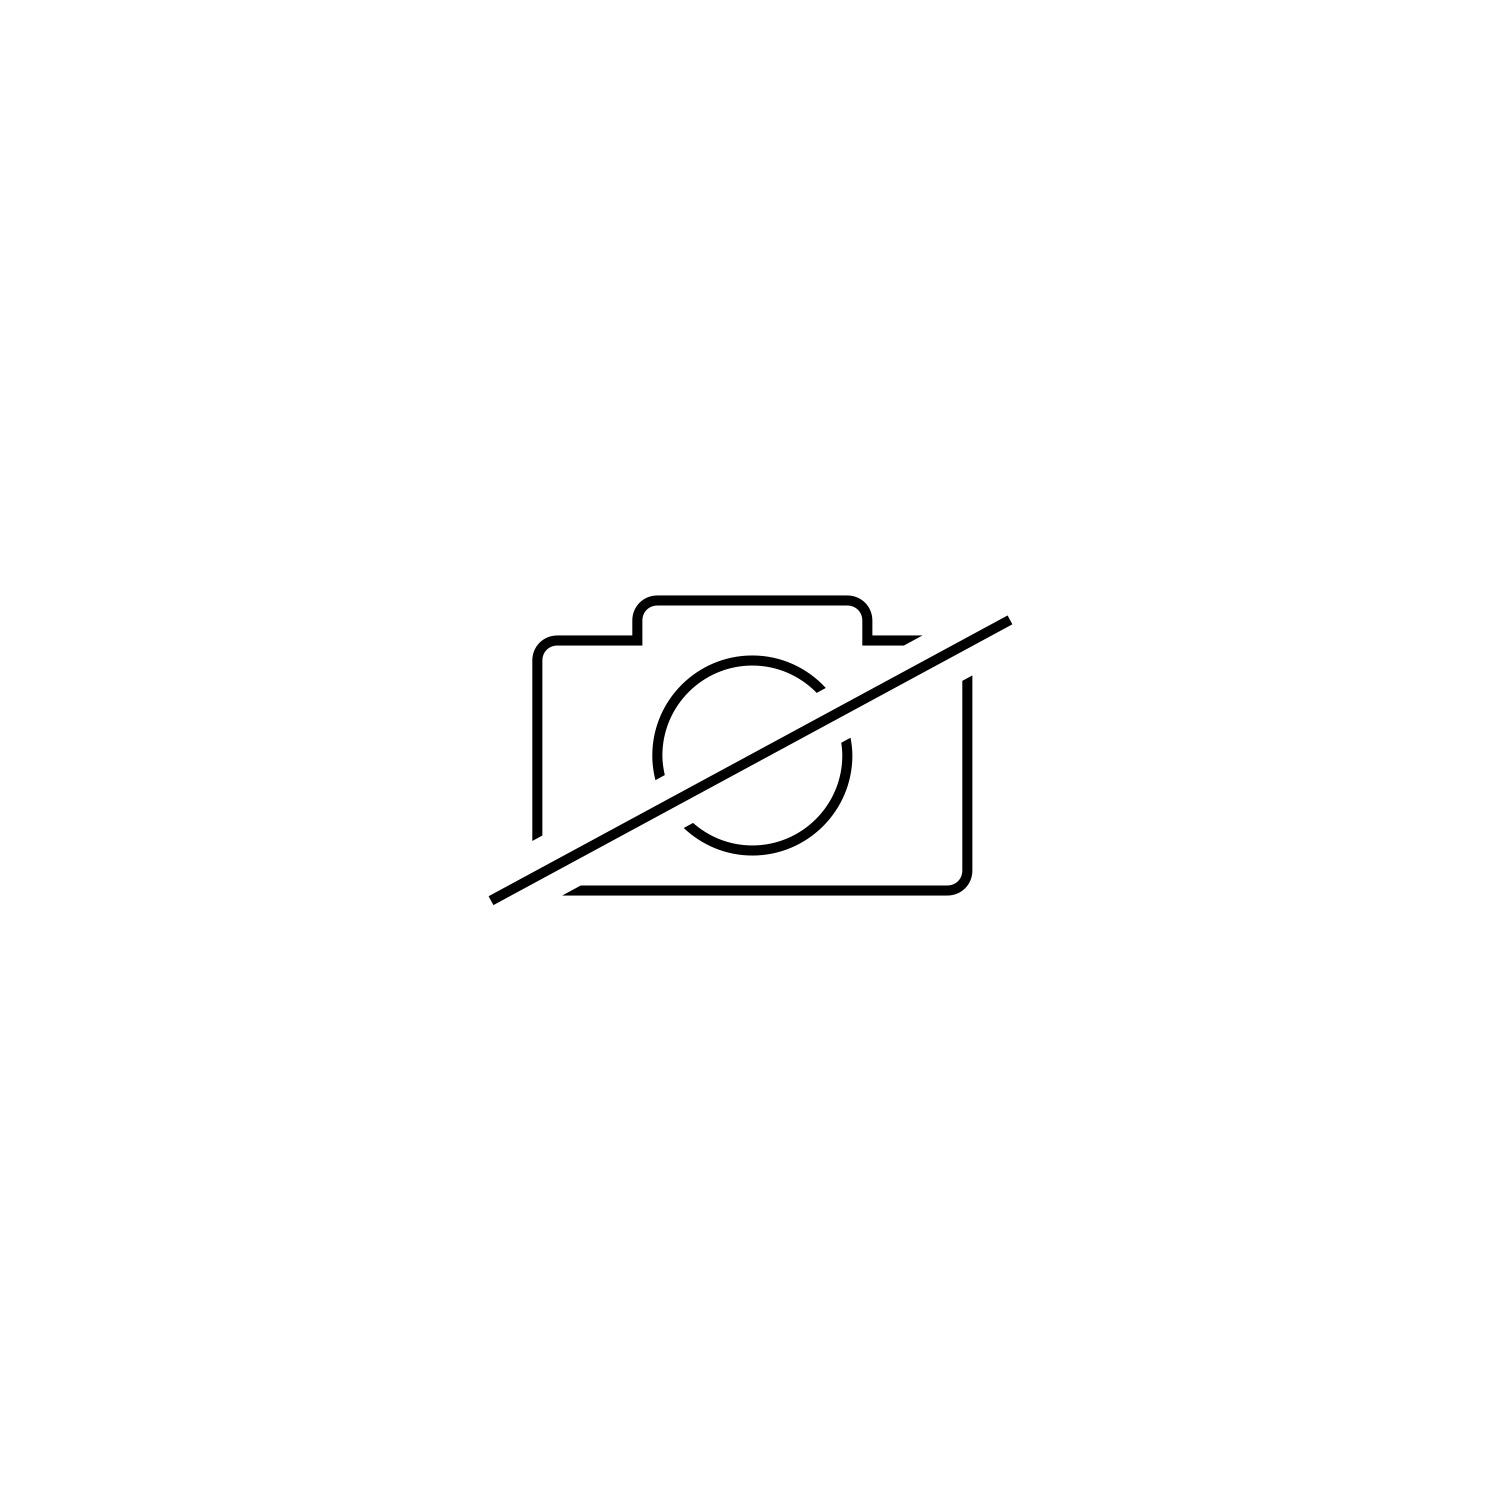 Seriesproduction Models Model Cars Audi Collection - Audi a series models